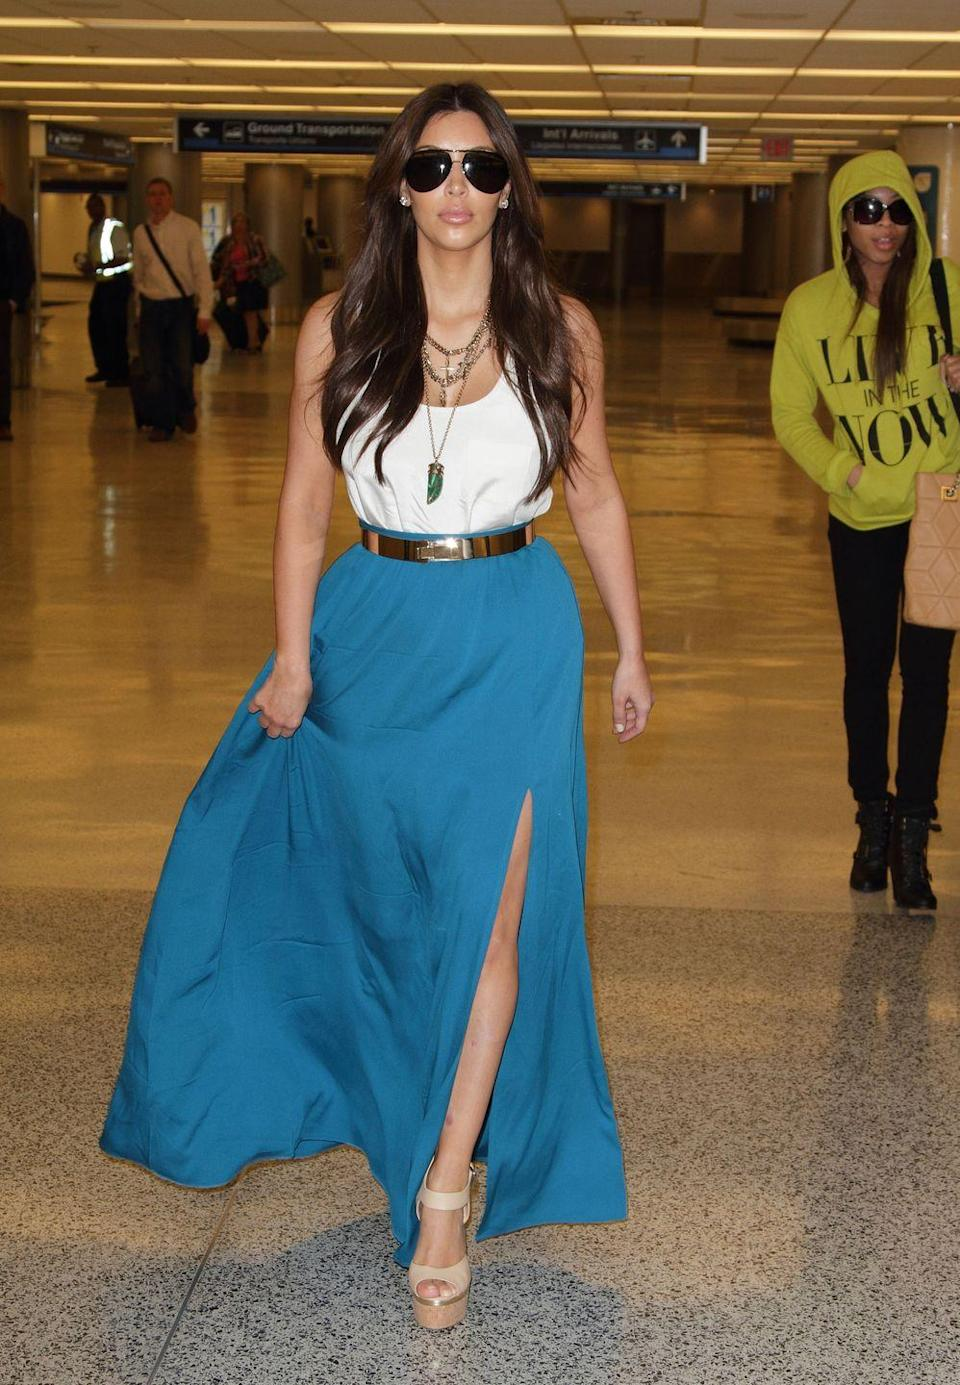 <p><strong>Kim Kardashian, 2012: </strong>Having to carry your skirt as you walk is glamorous when you're strolling a red carpet. When you're hustling through the airport, it's just dumb.</p>